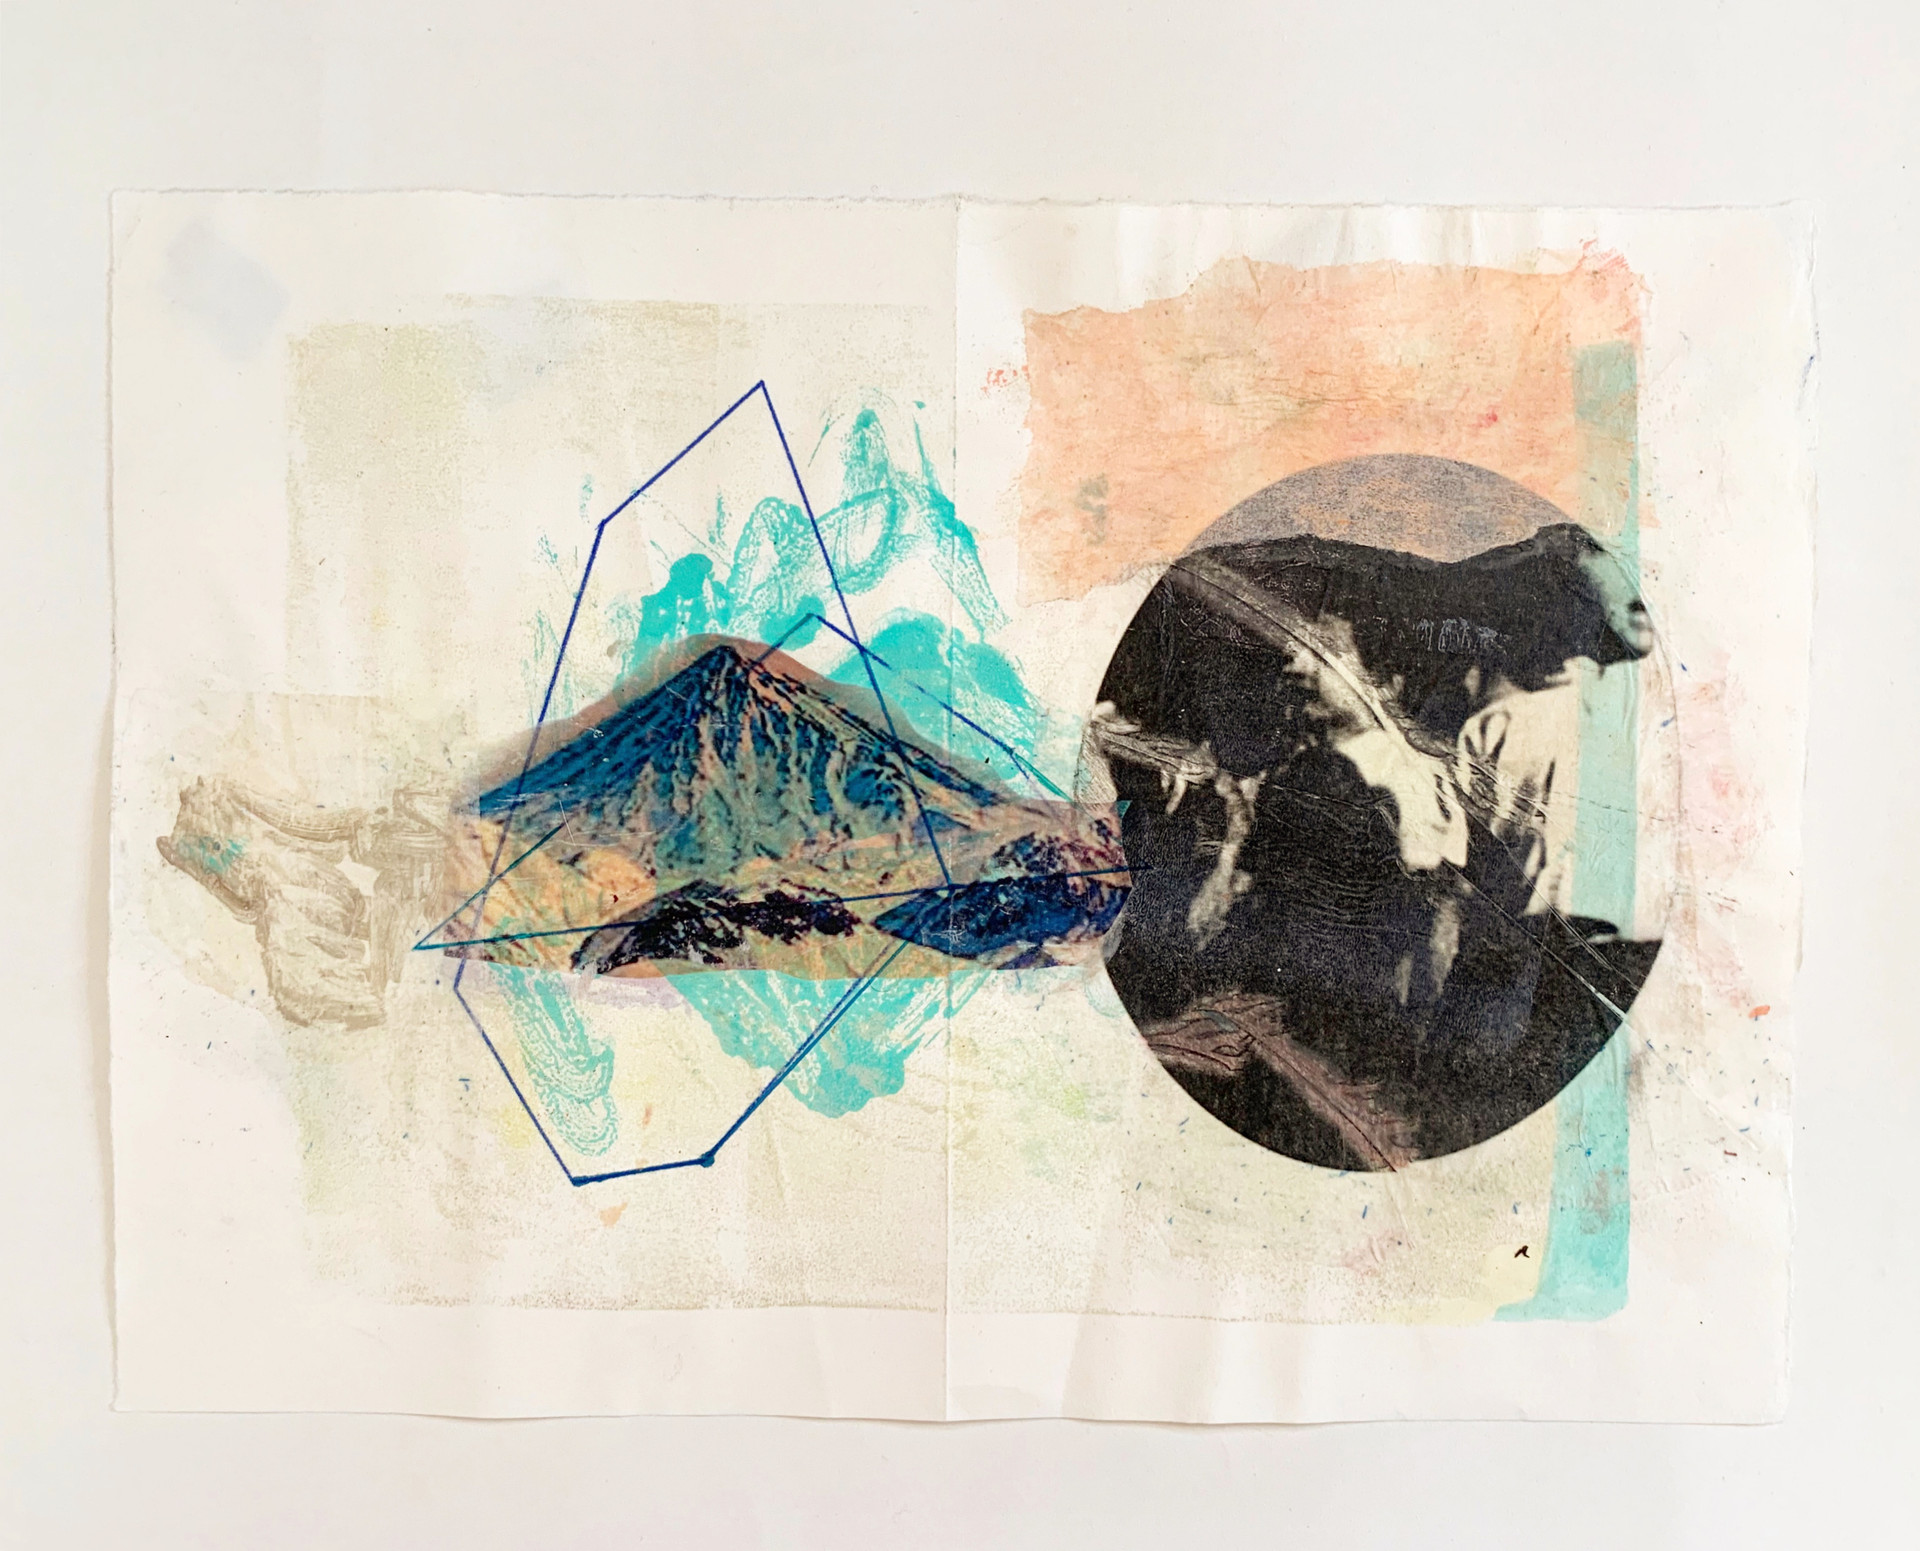 Untittled (Study for Hum with Damavand & Kids)